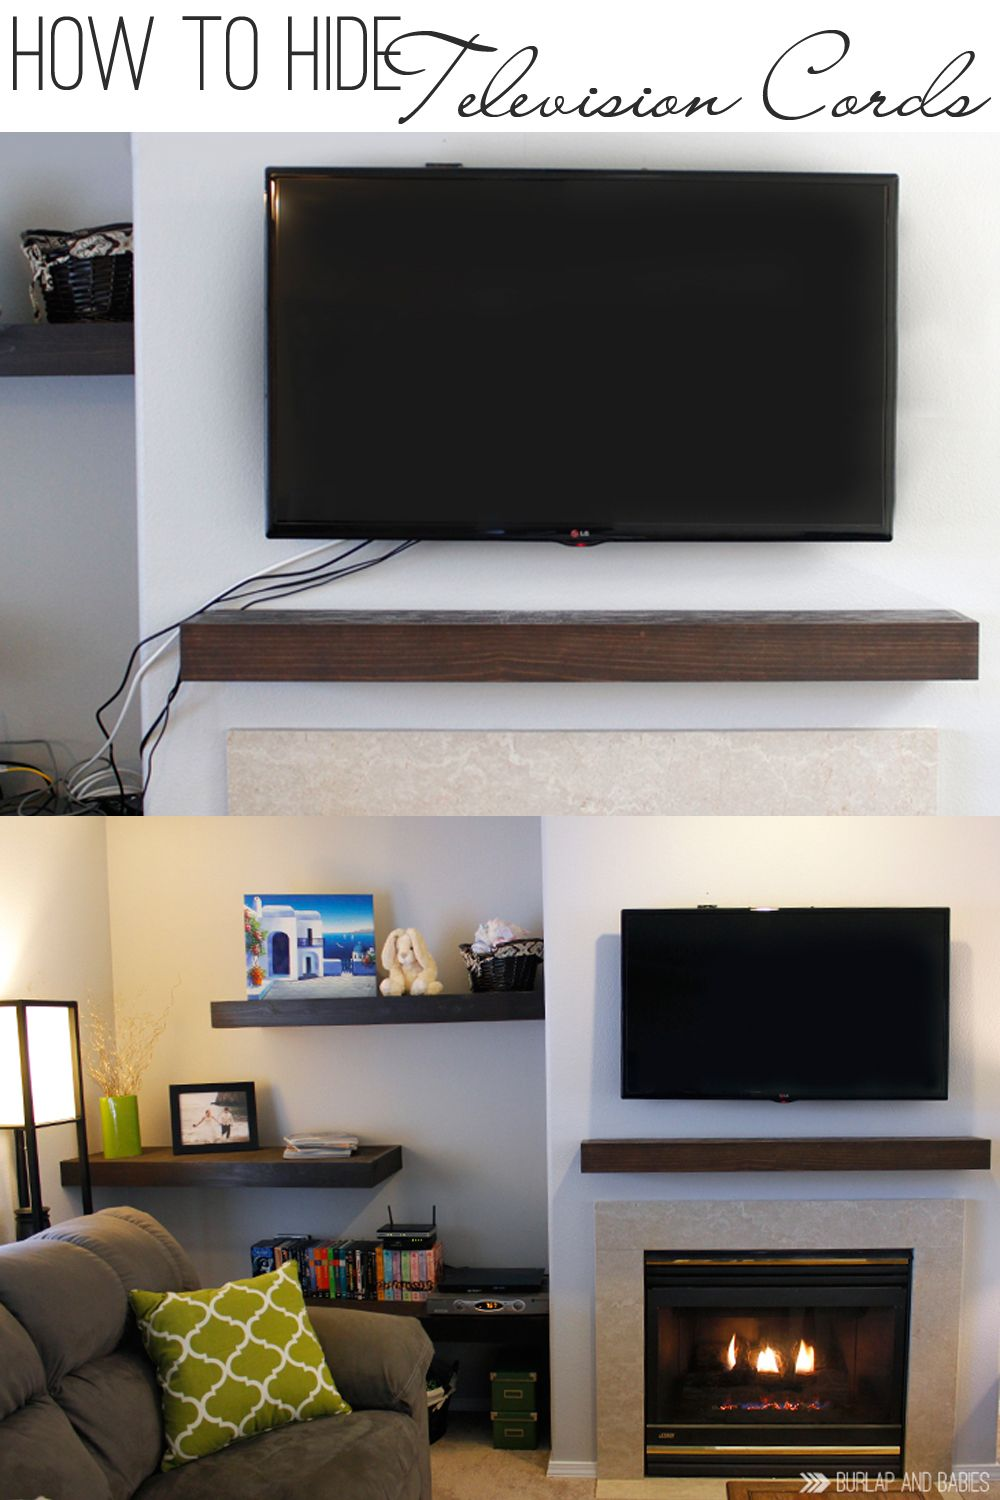 Superbe How To Hide Tv Cords | There Is Nothing That Messes Up A Beautiful Room  Like A Mess Of Cords. Here Is A Simple Way To Hide The Cords In The Wall.